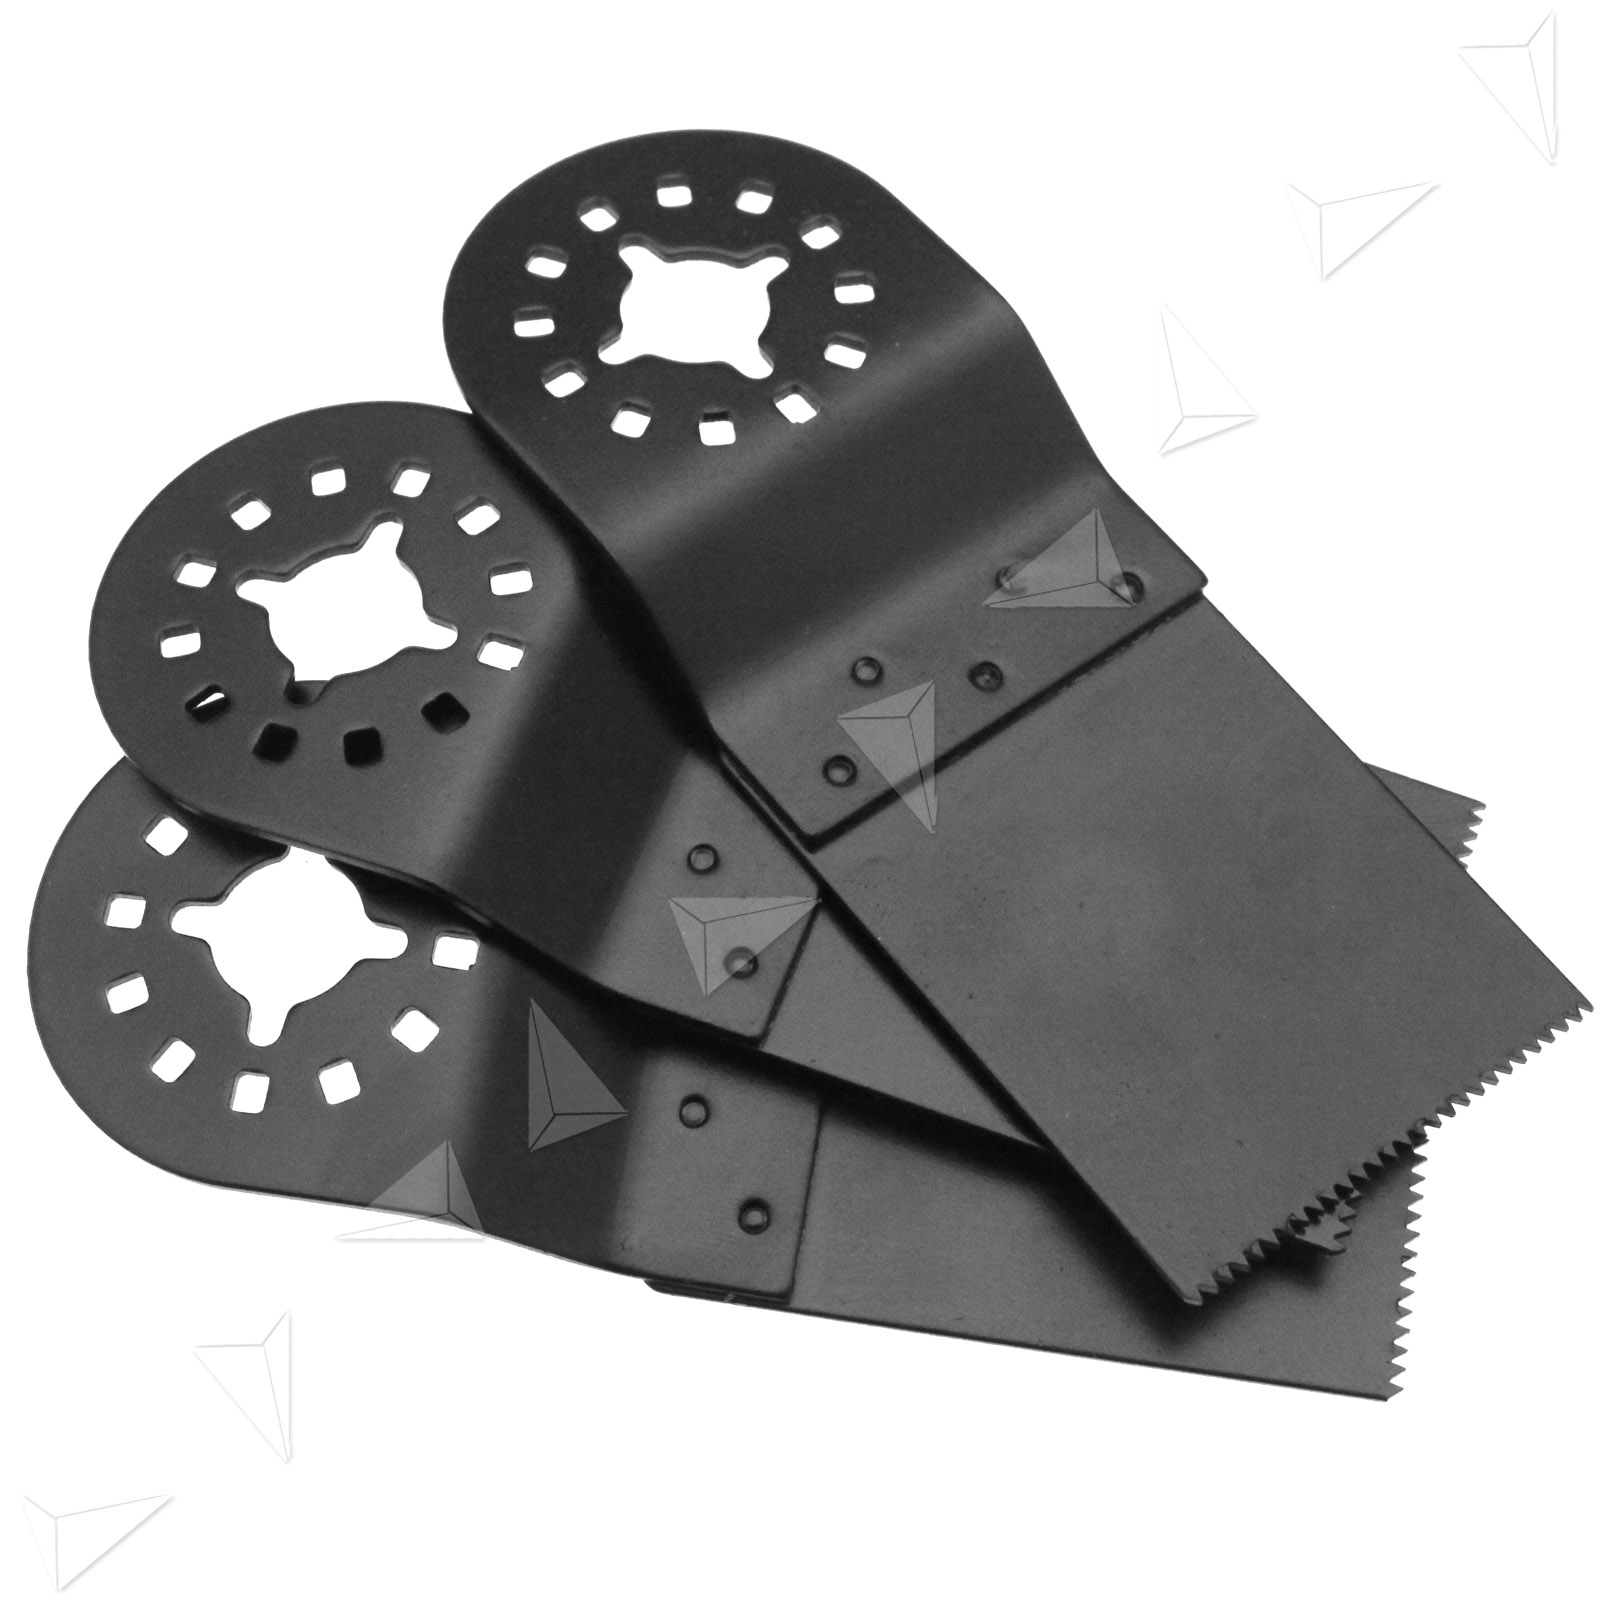 10pcs black 35mm blades for fein multimaster bosch makita multitool ebay. Black Bedroom Furniture Sets. Home Design Ideas